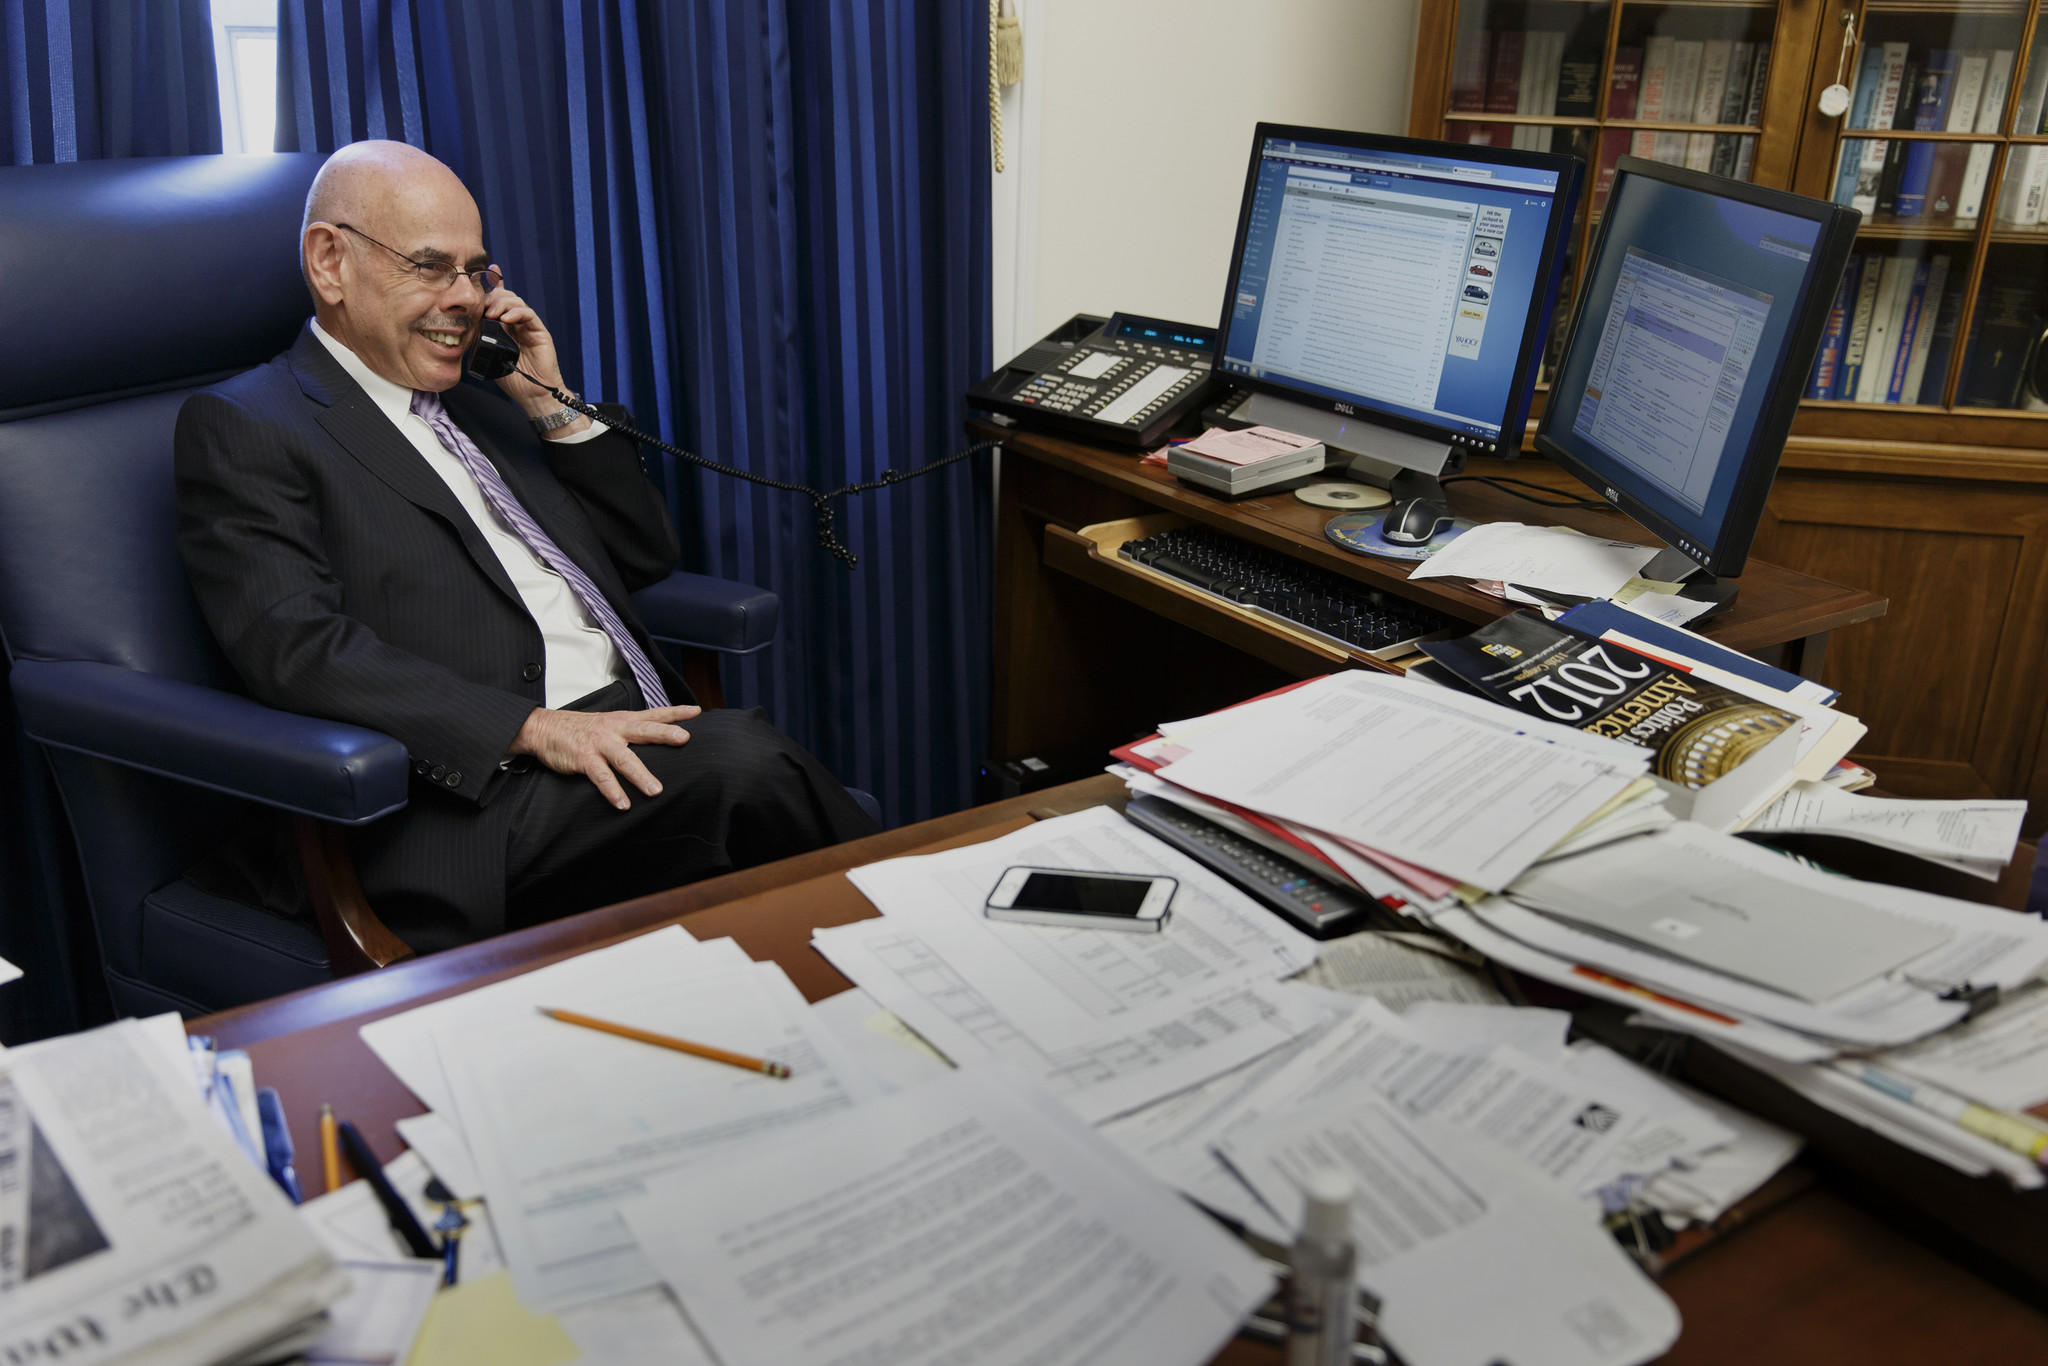 Rep. Henry Waxman (D-Calif.) fields a flurry of phone calls in his Capitol Hill office in Washington after he announced he would retire after 40 years in the House of Representatives.